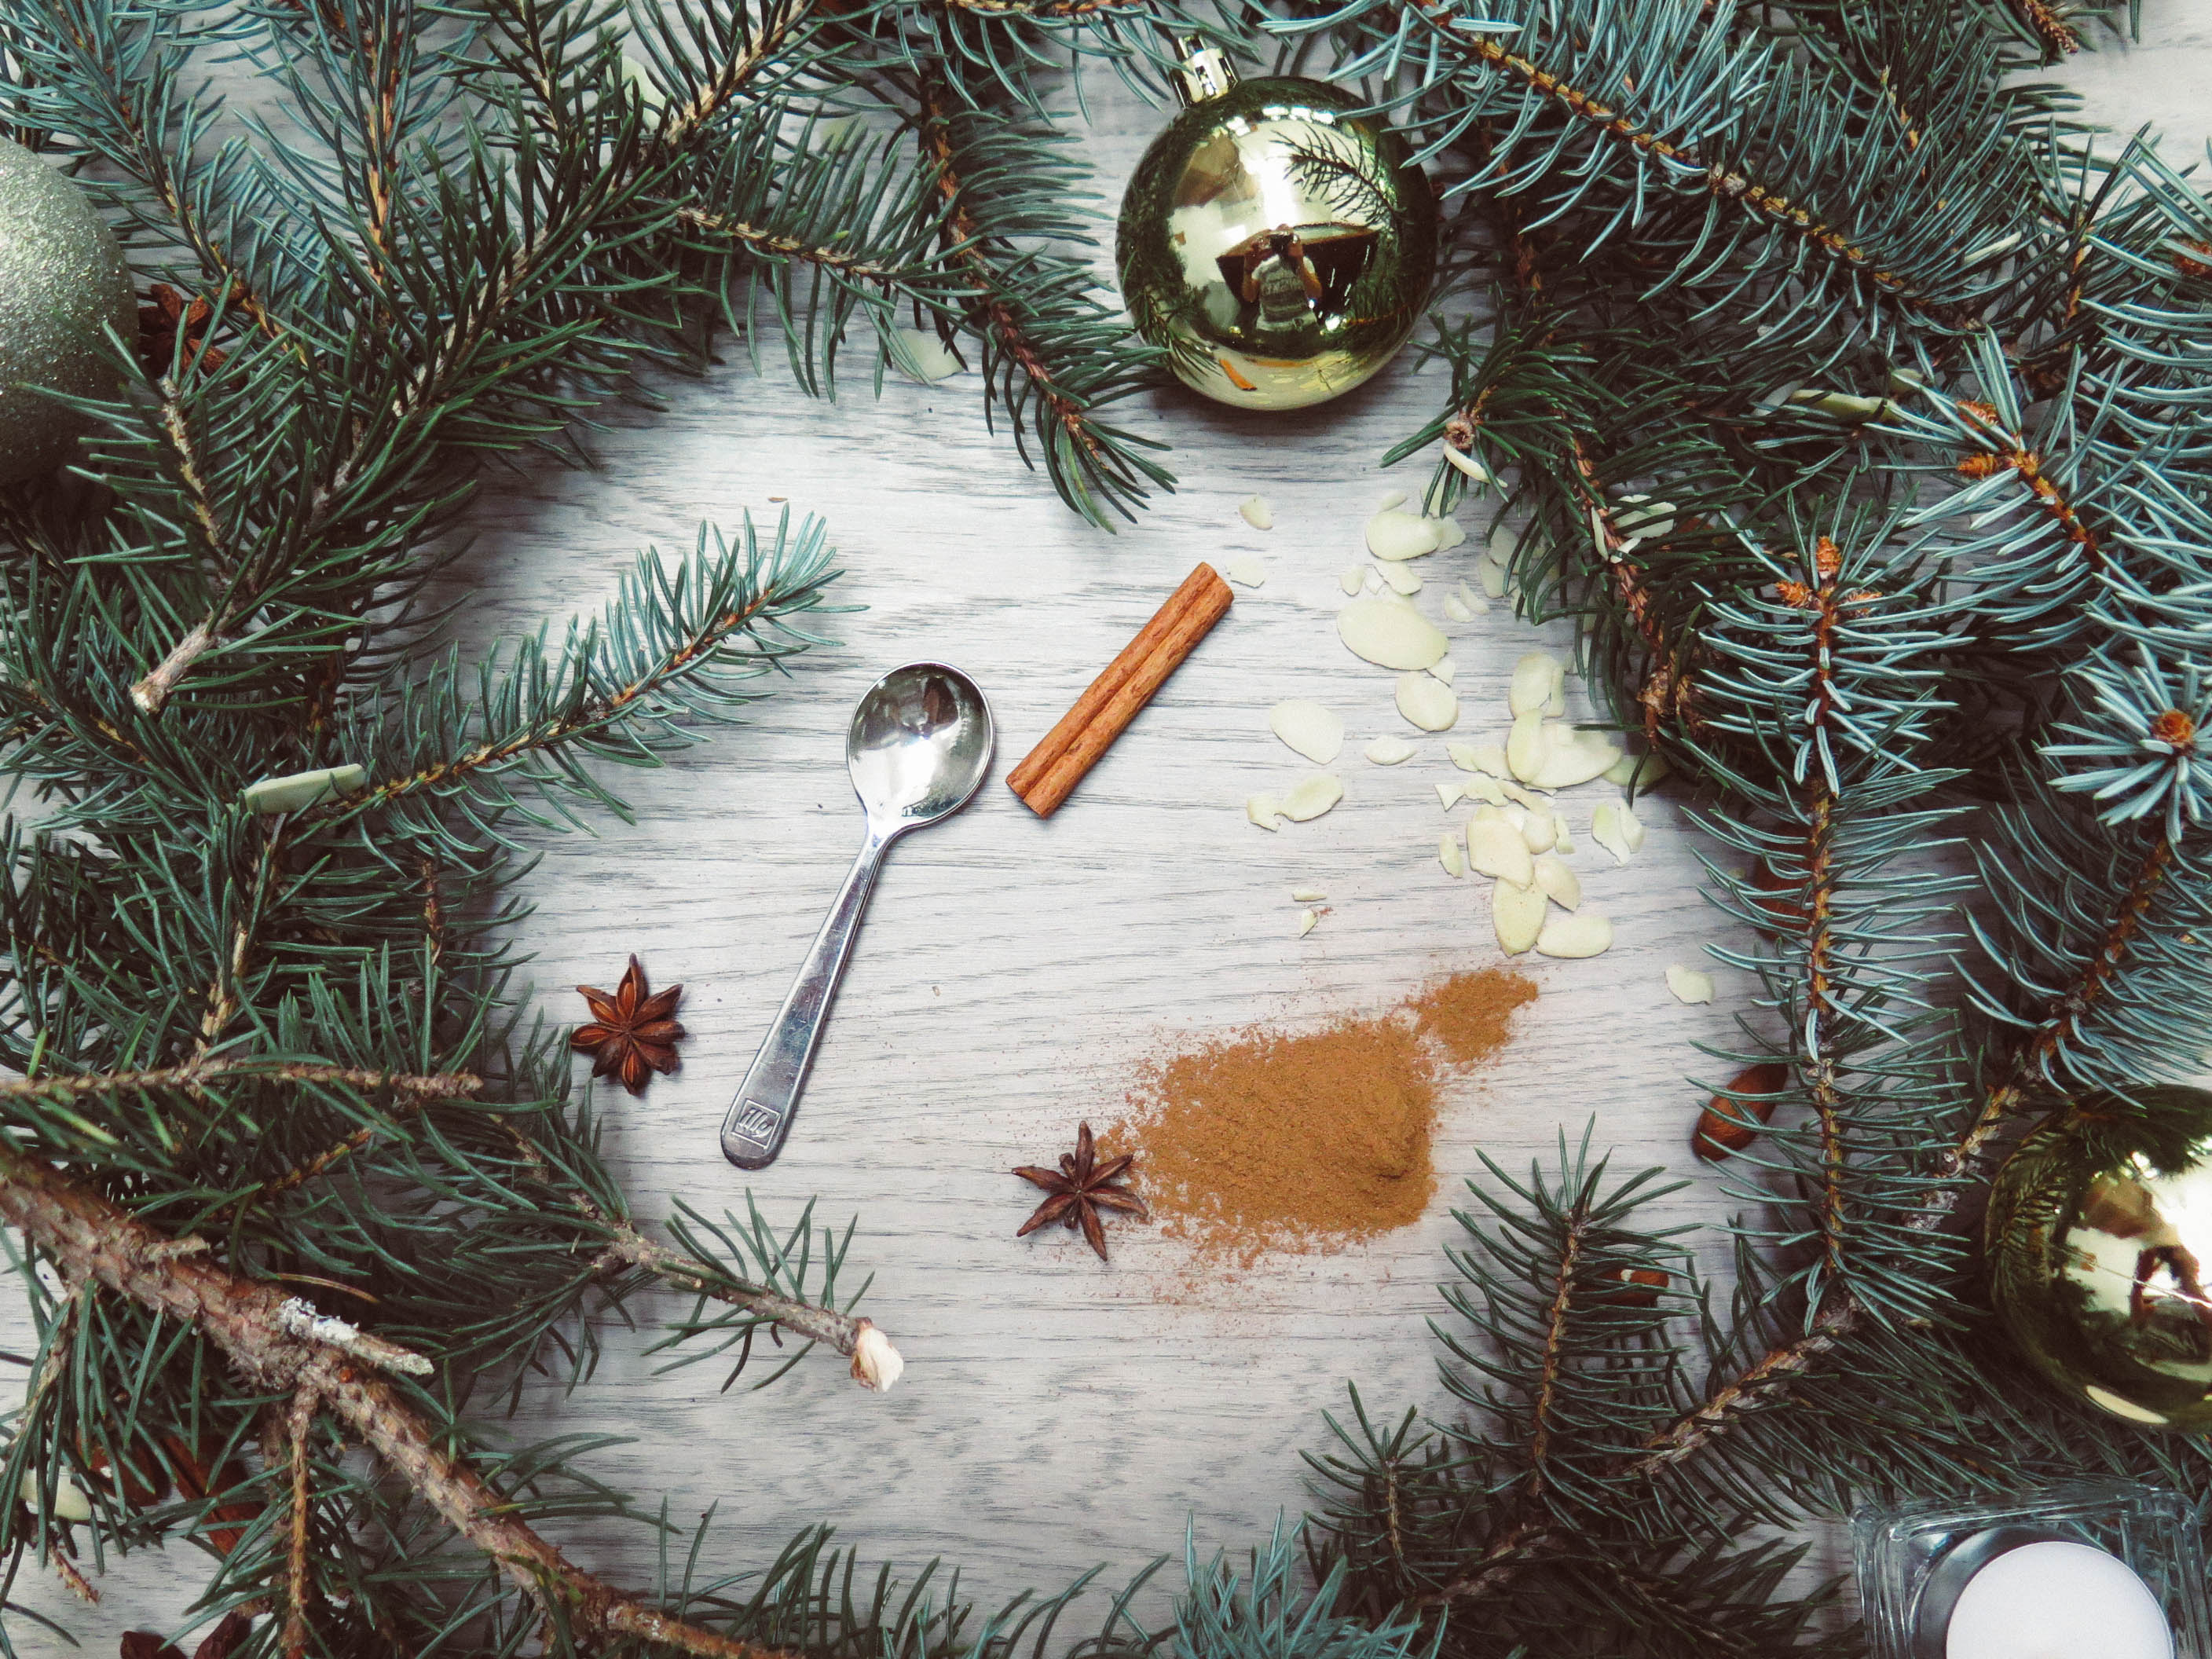 Spoon, cinnamon stick, and ground nutmeg centered in an evergreen wreath